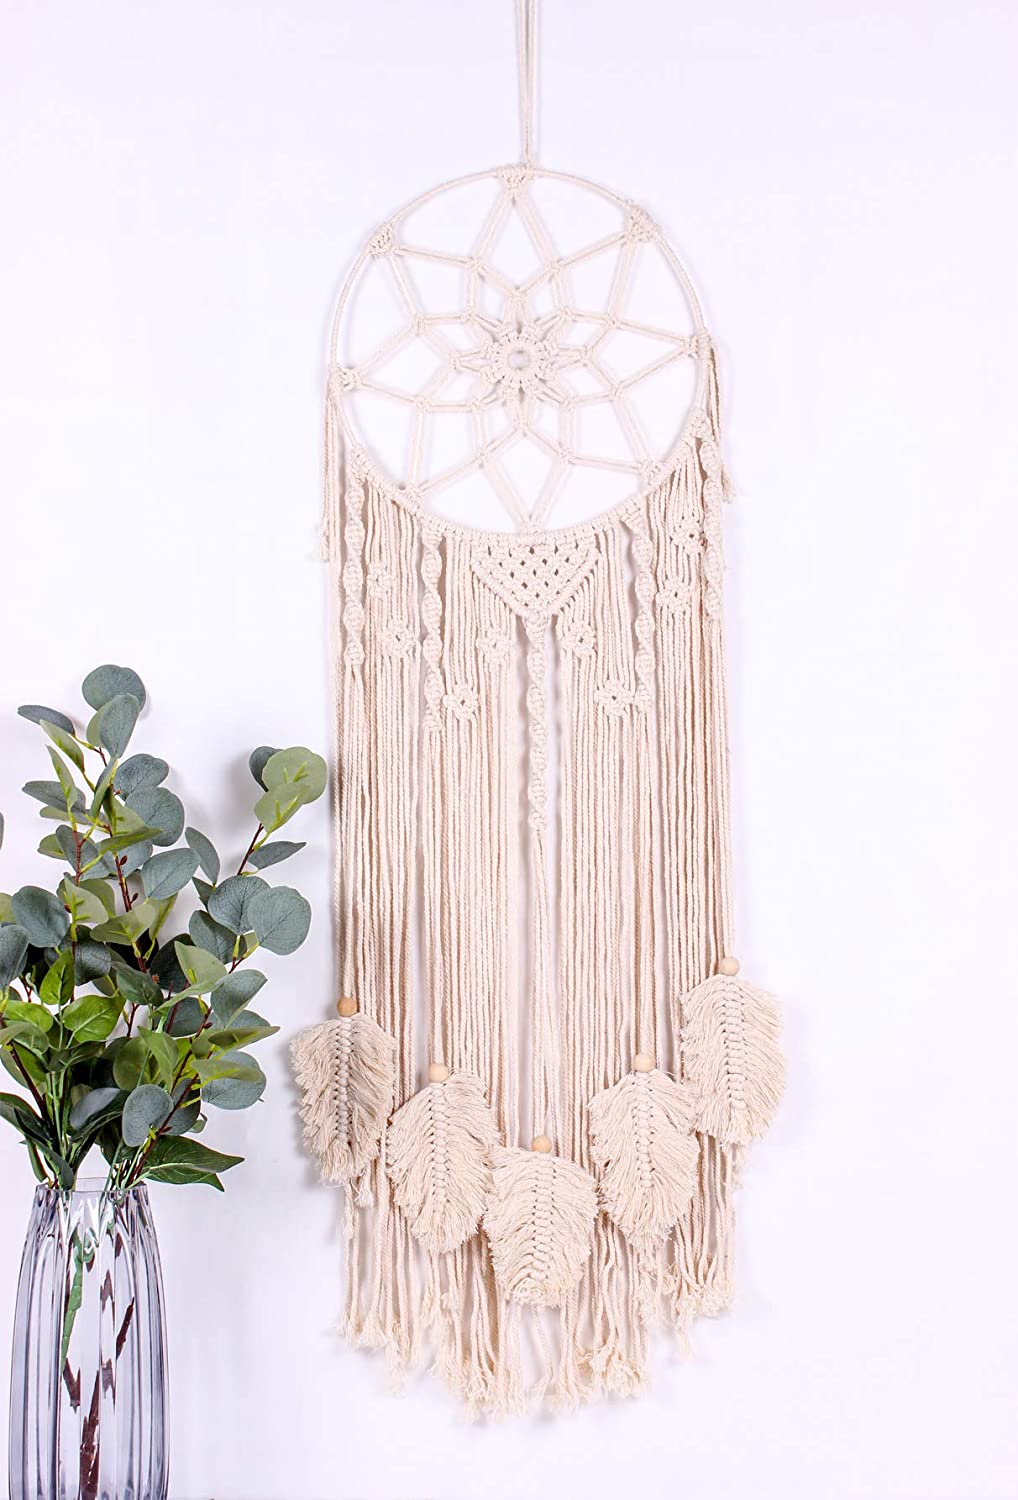 AerWo Macrame Dream Catcher Woven Wall Hanging,Huge Dream Catcher Wall Decor with Feather Leaf and Canvas Bag for Bedroom Baby Nursery Decor, Boho Tassels Decoration Handmade Dreamcatcher, 36 x 13 Inc